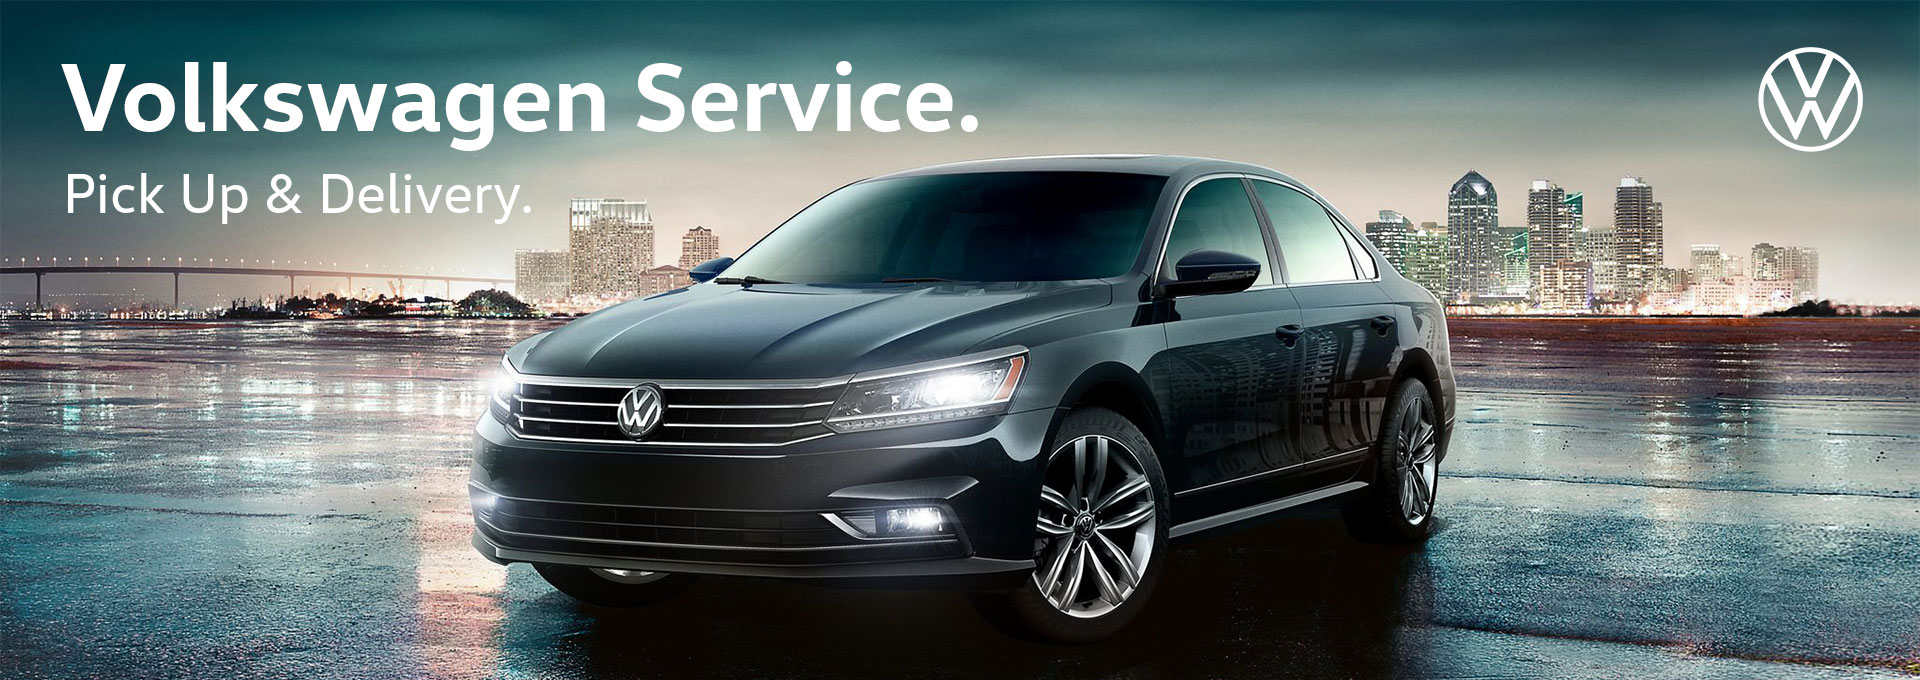 North Penn Volkswagen Pick Up & Delivery Service